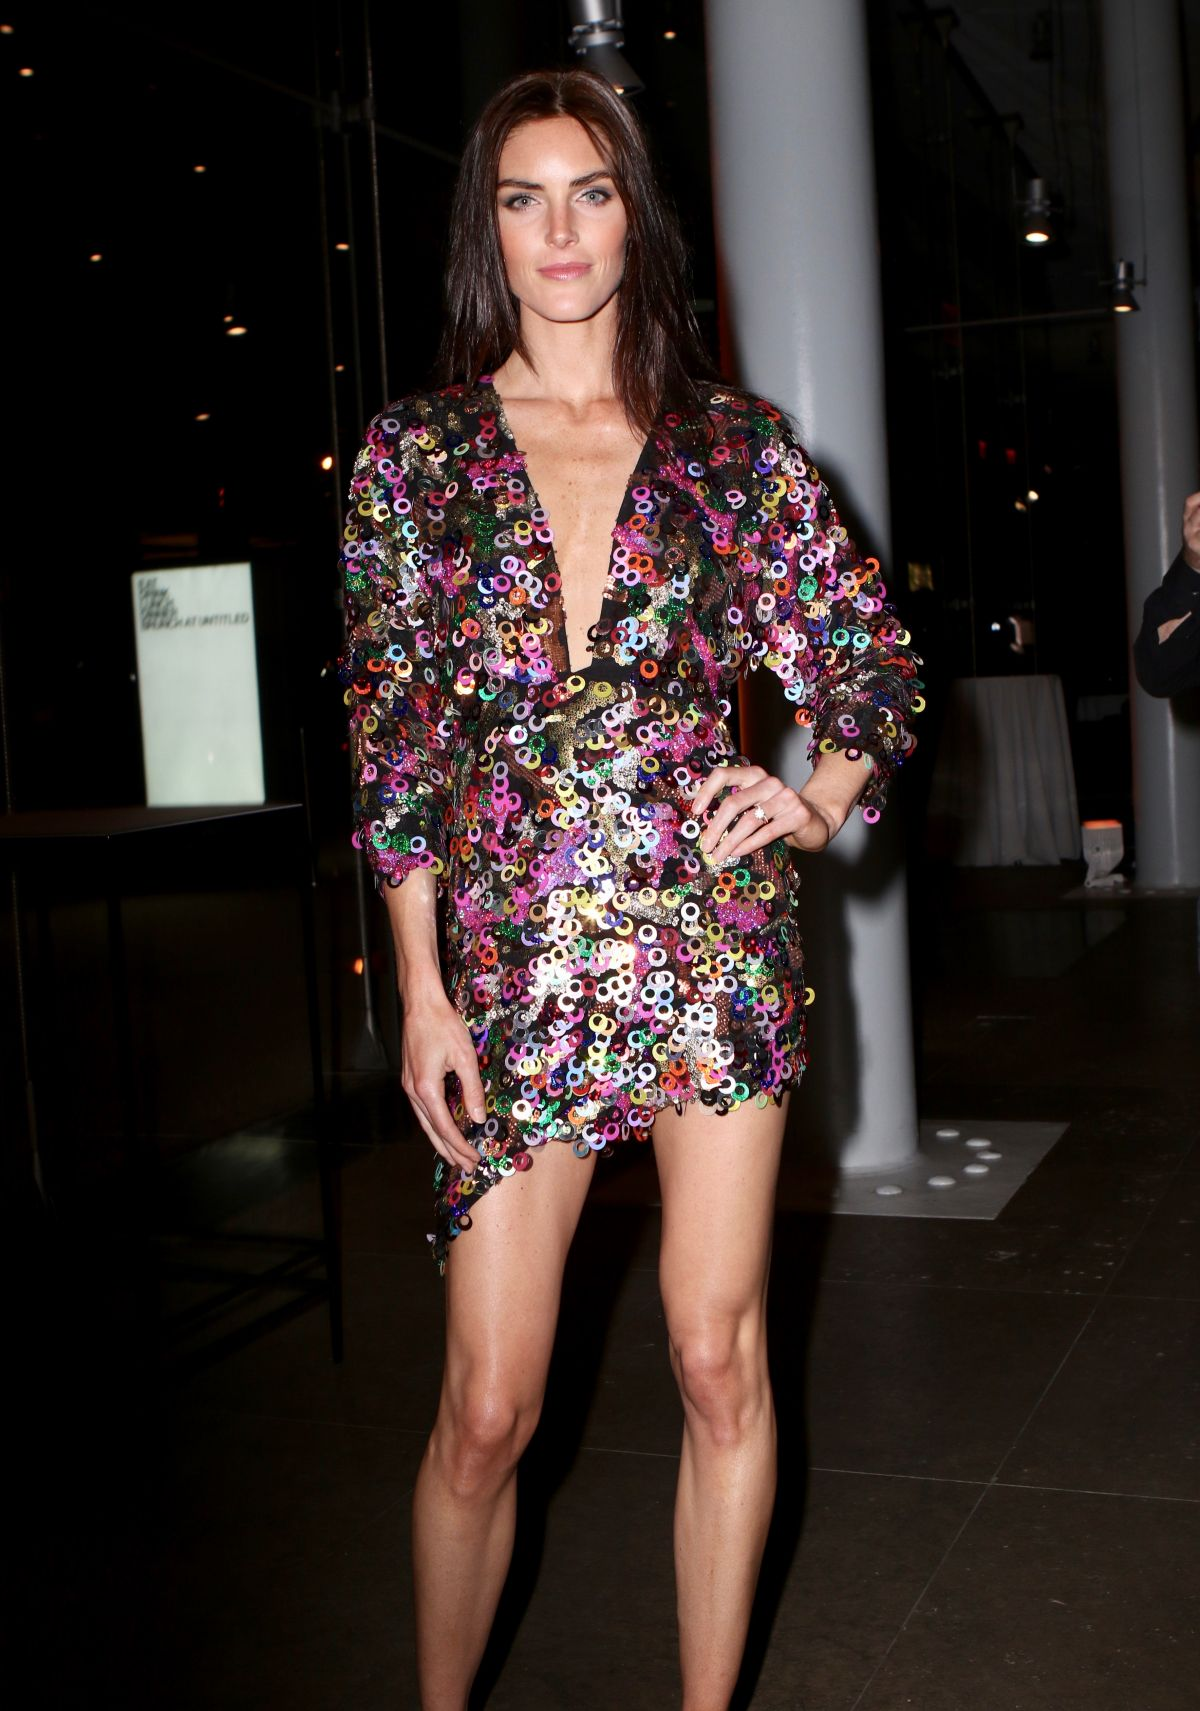 Pics Hilary Rhoda nudes (27 photos), Topless, Cleavage, Twitter, braless 2018